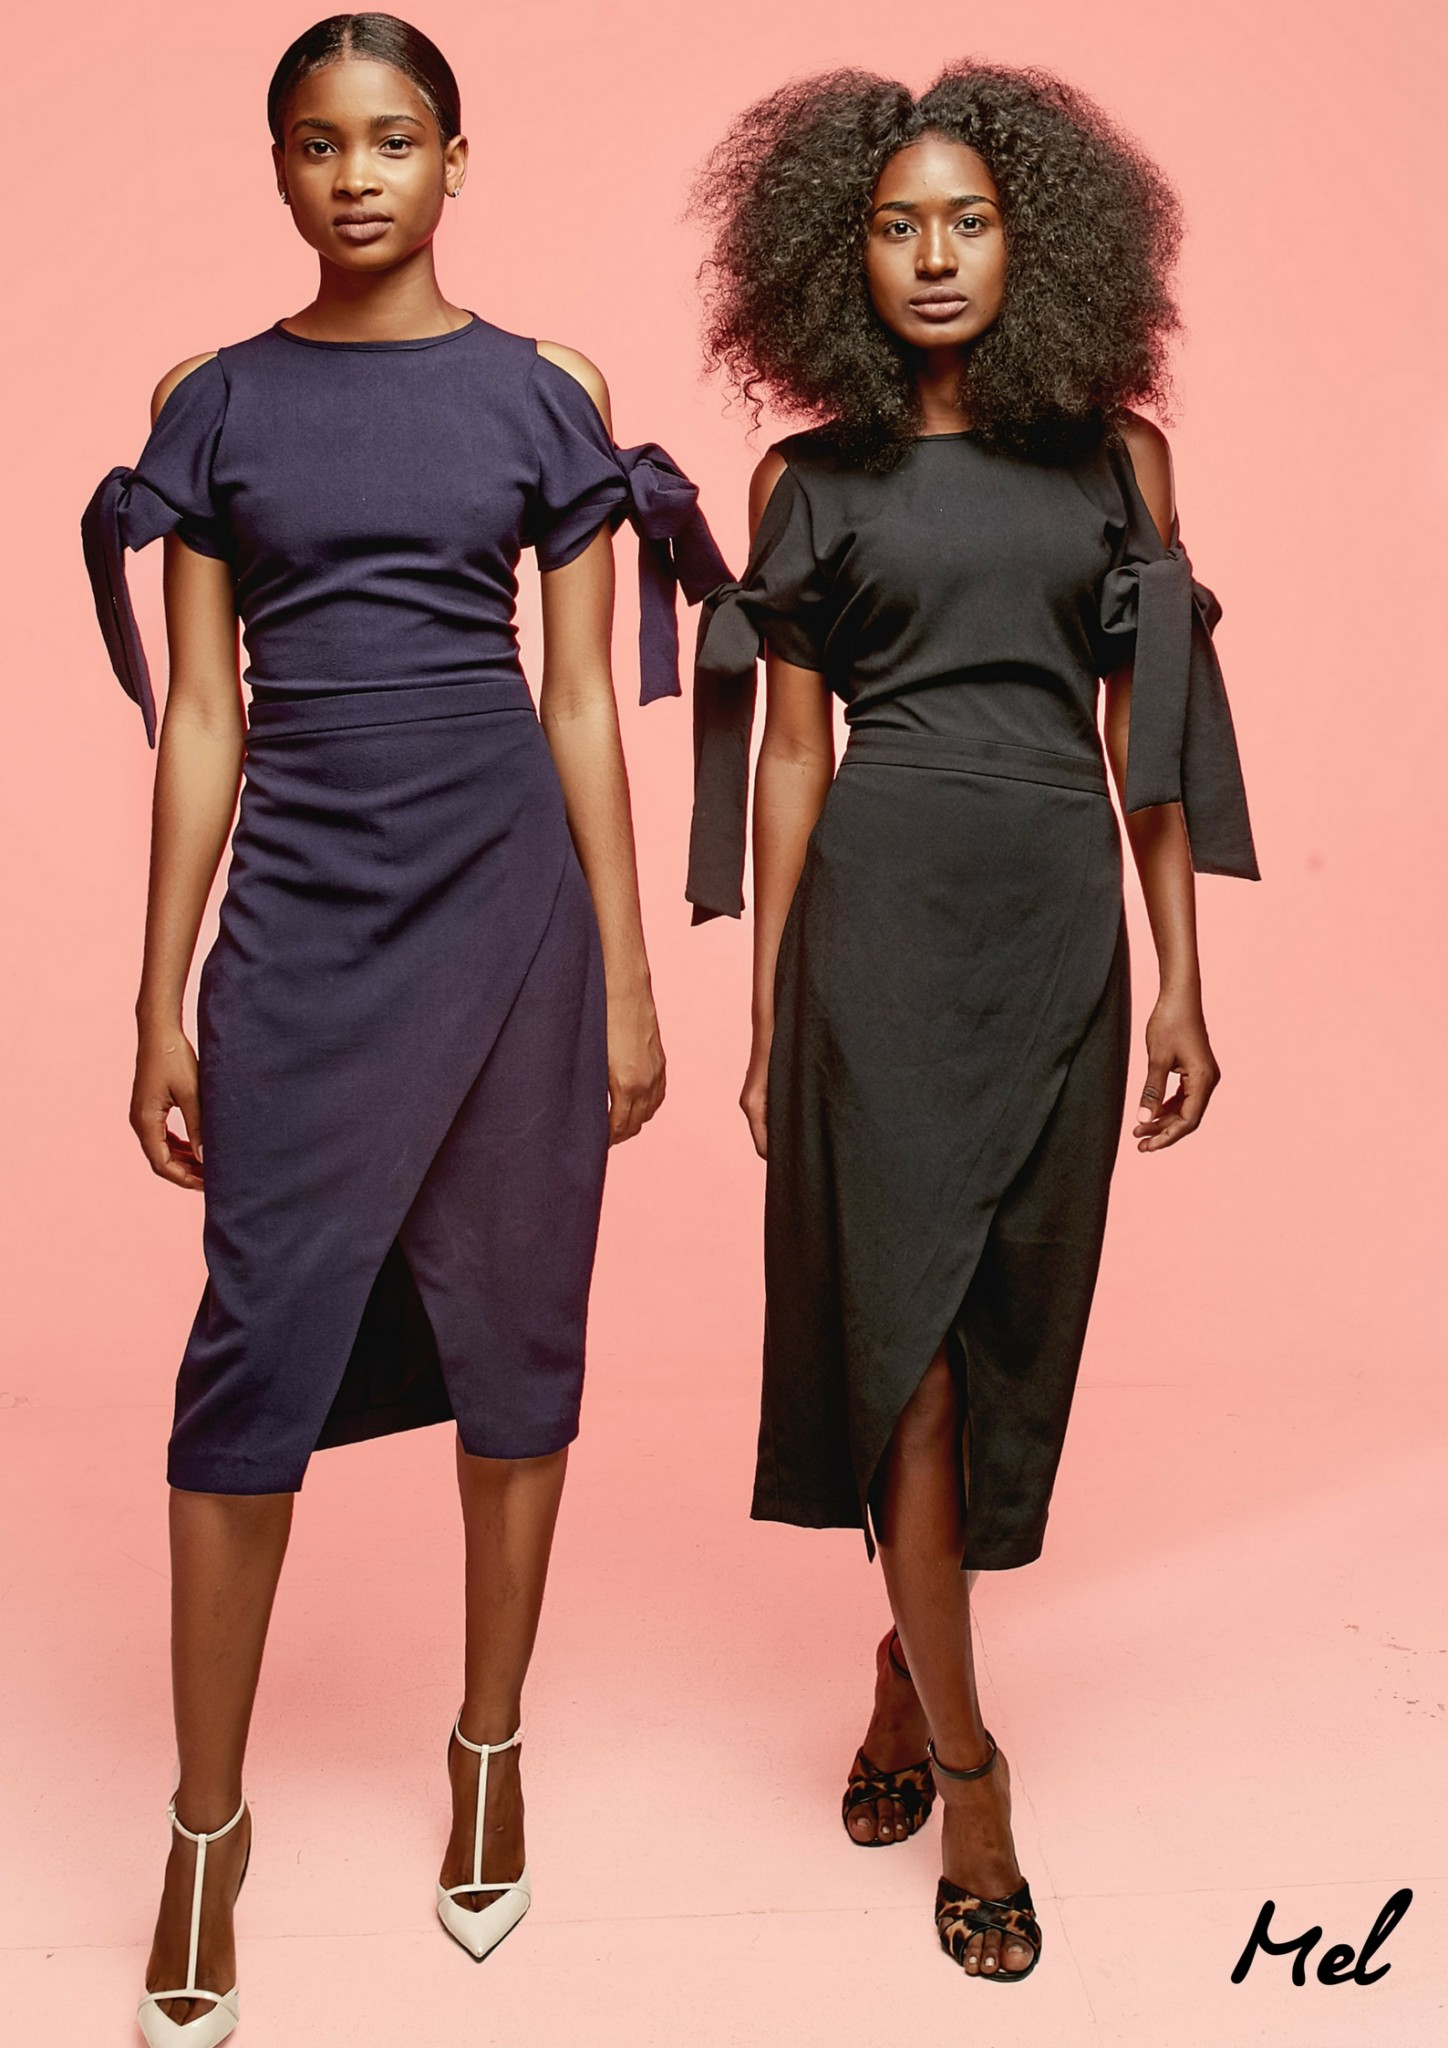 Fashpa Launches #Whoismel Lookbook and Video Campaign